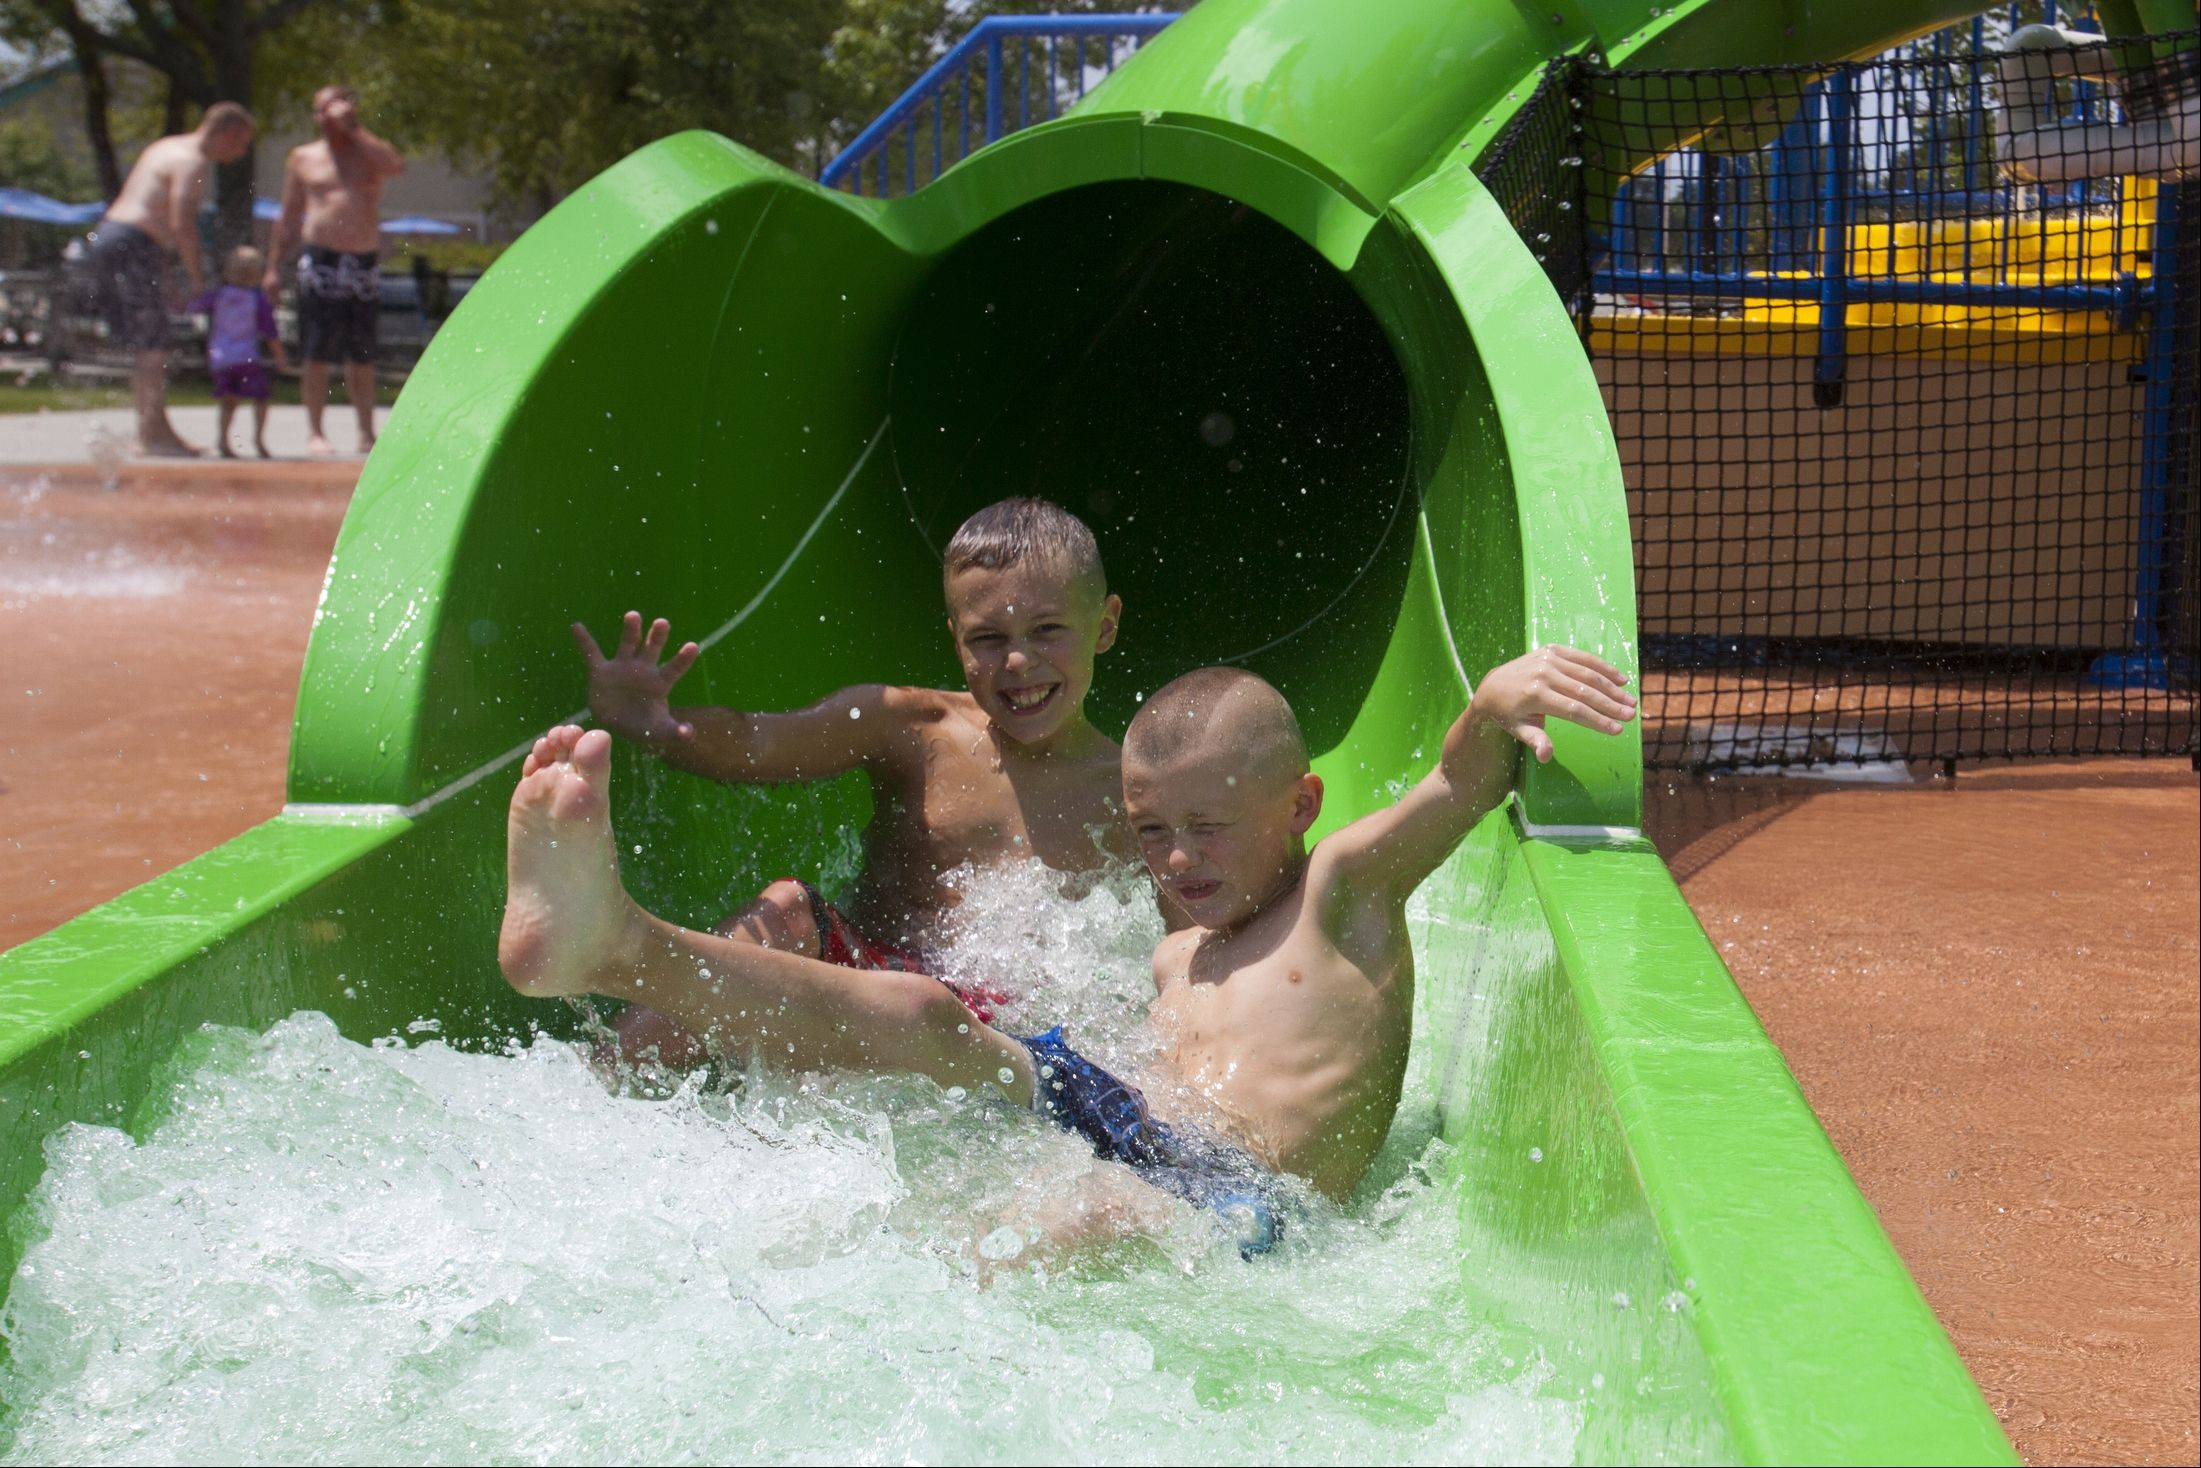 Evan James Spresser, 10, and his brother Cole Michael, 8, of Bartlett splash down a slide at the Bartlett Aquatic Center trying to stay cool in over 90 degree heat.